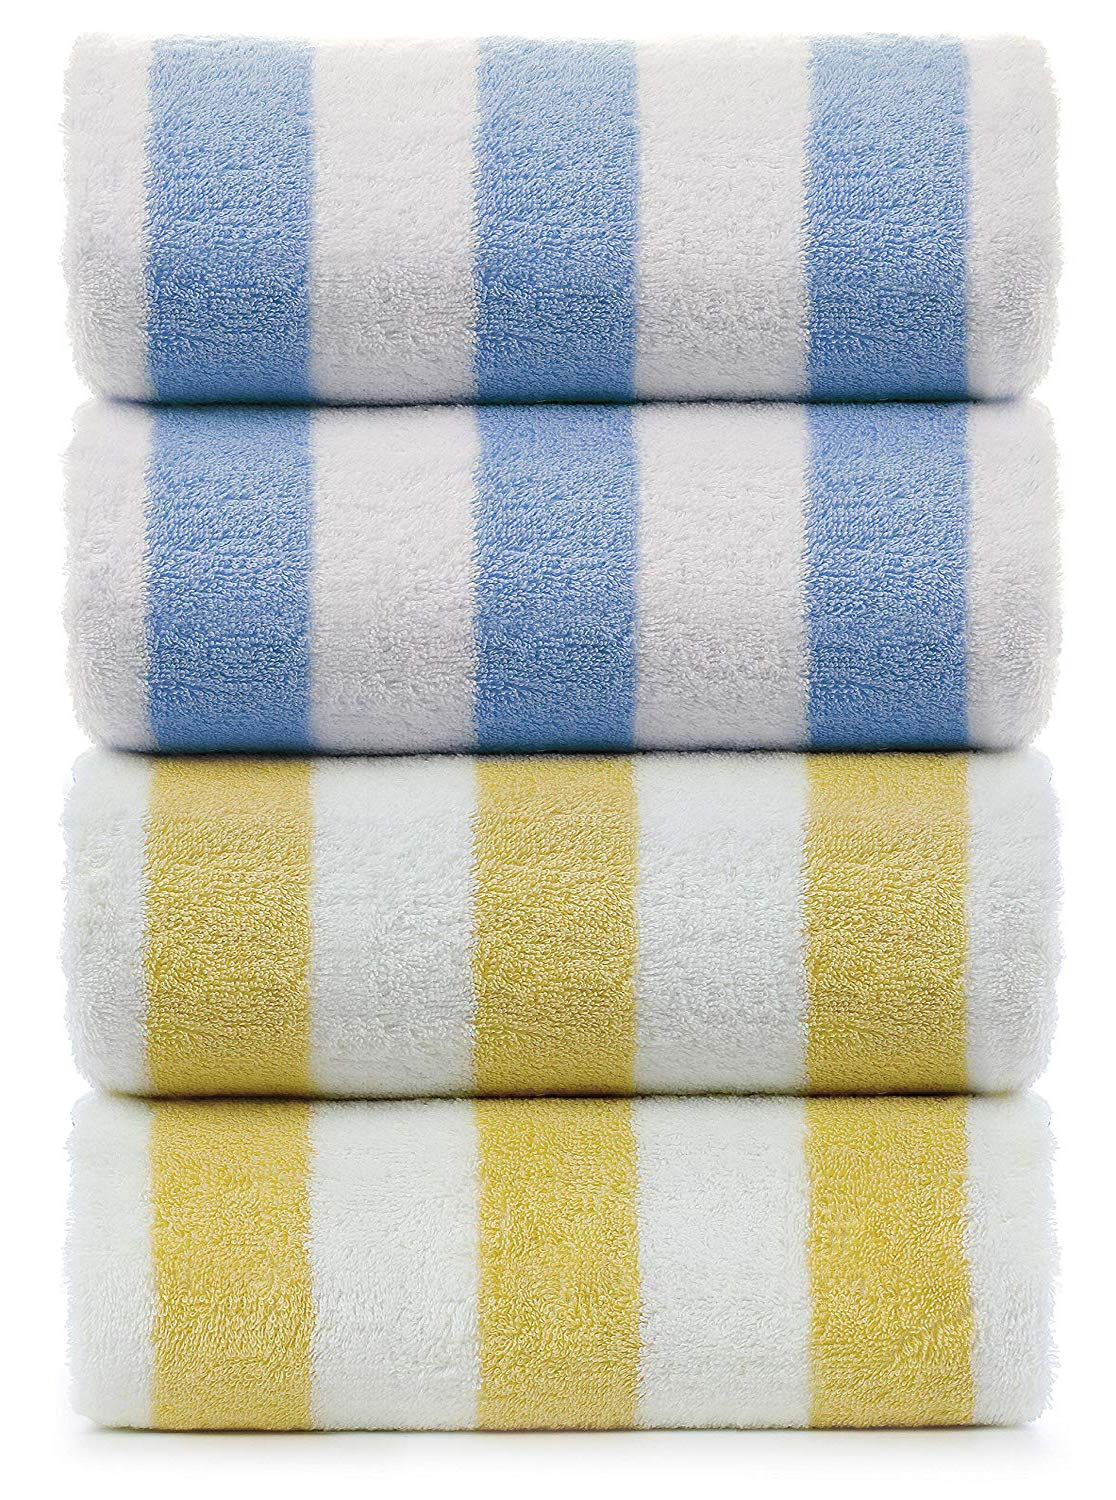 Indulge Large Beach and Pool Towel, Cabana Stripe, 100% Turkish Cotton (30x60 inches) (4, Yellow Blue)